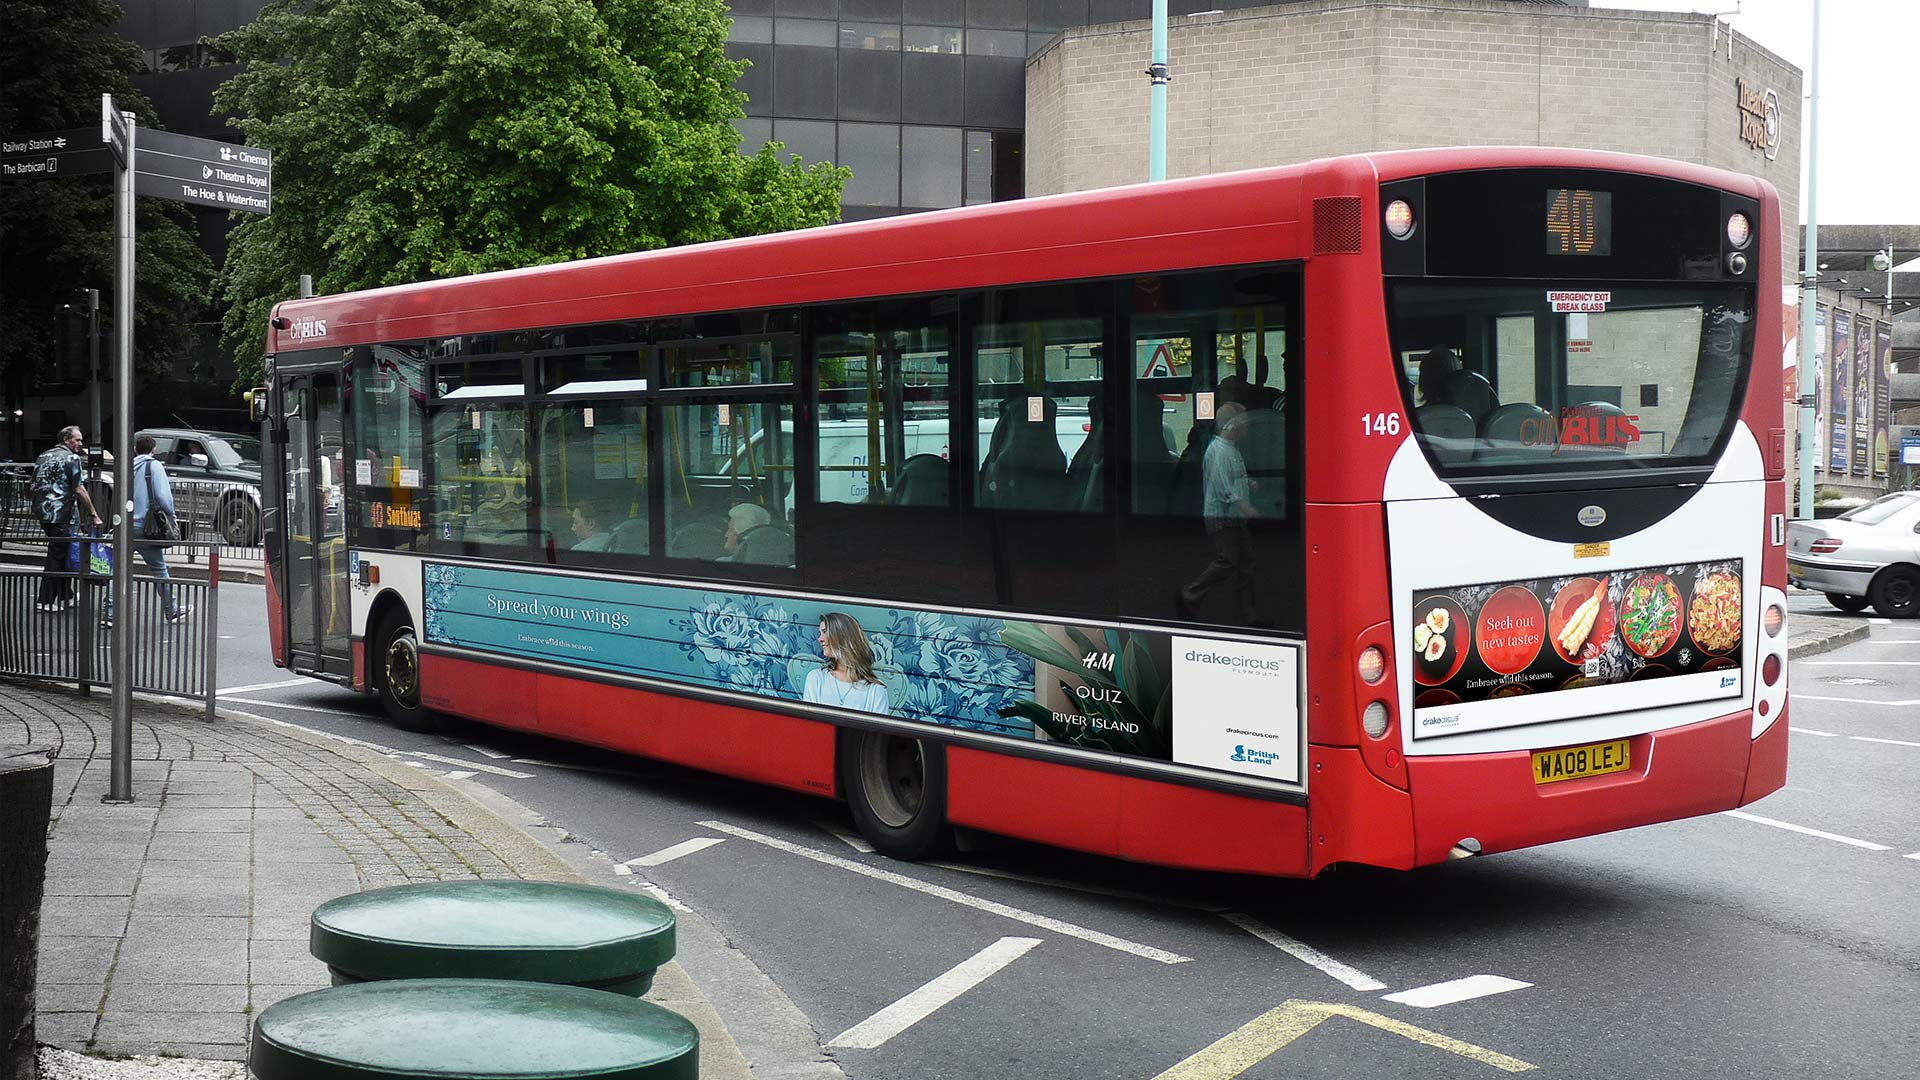 Drake Circus Summer bus side and back